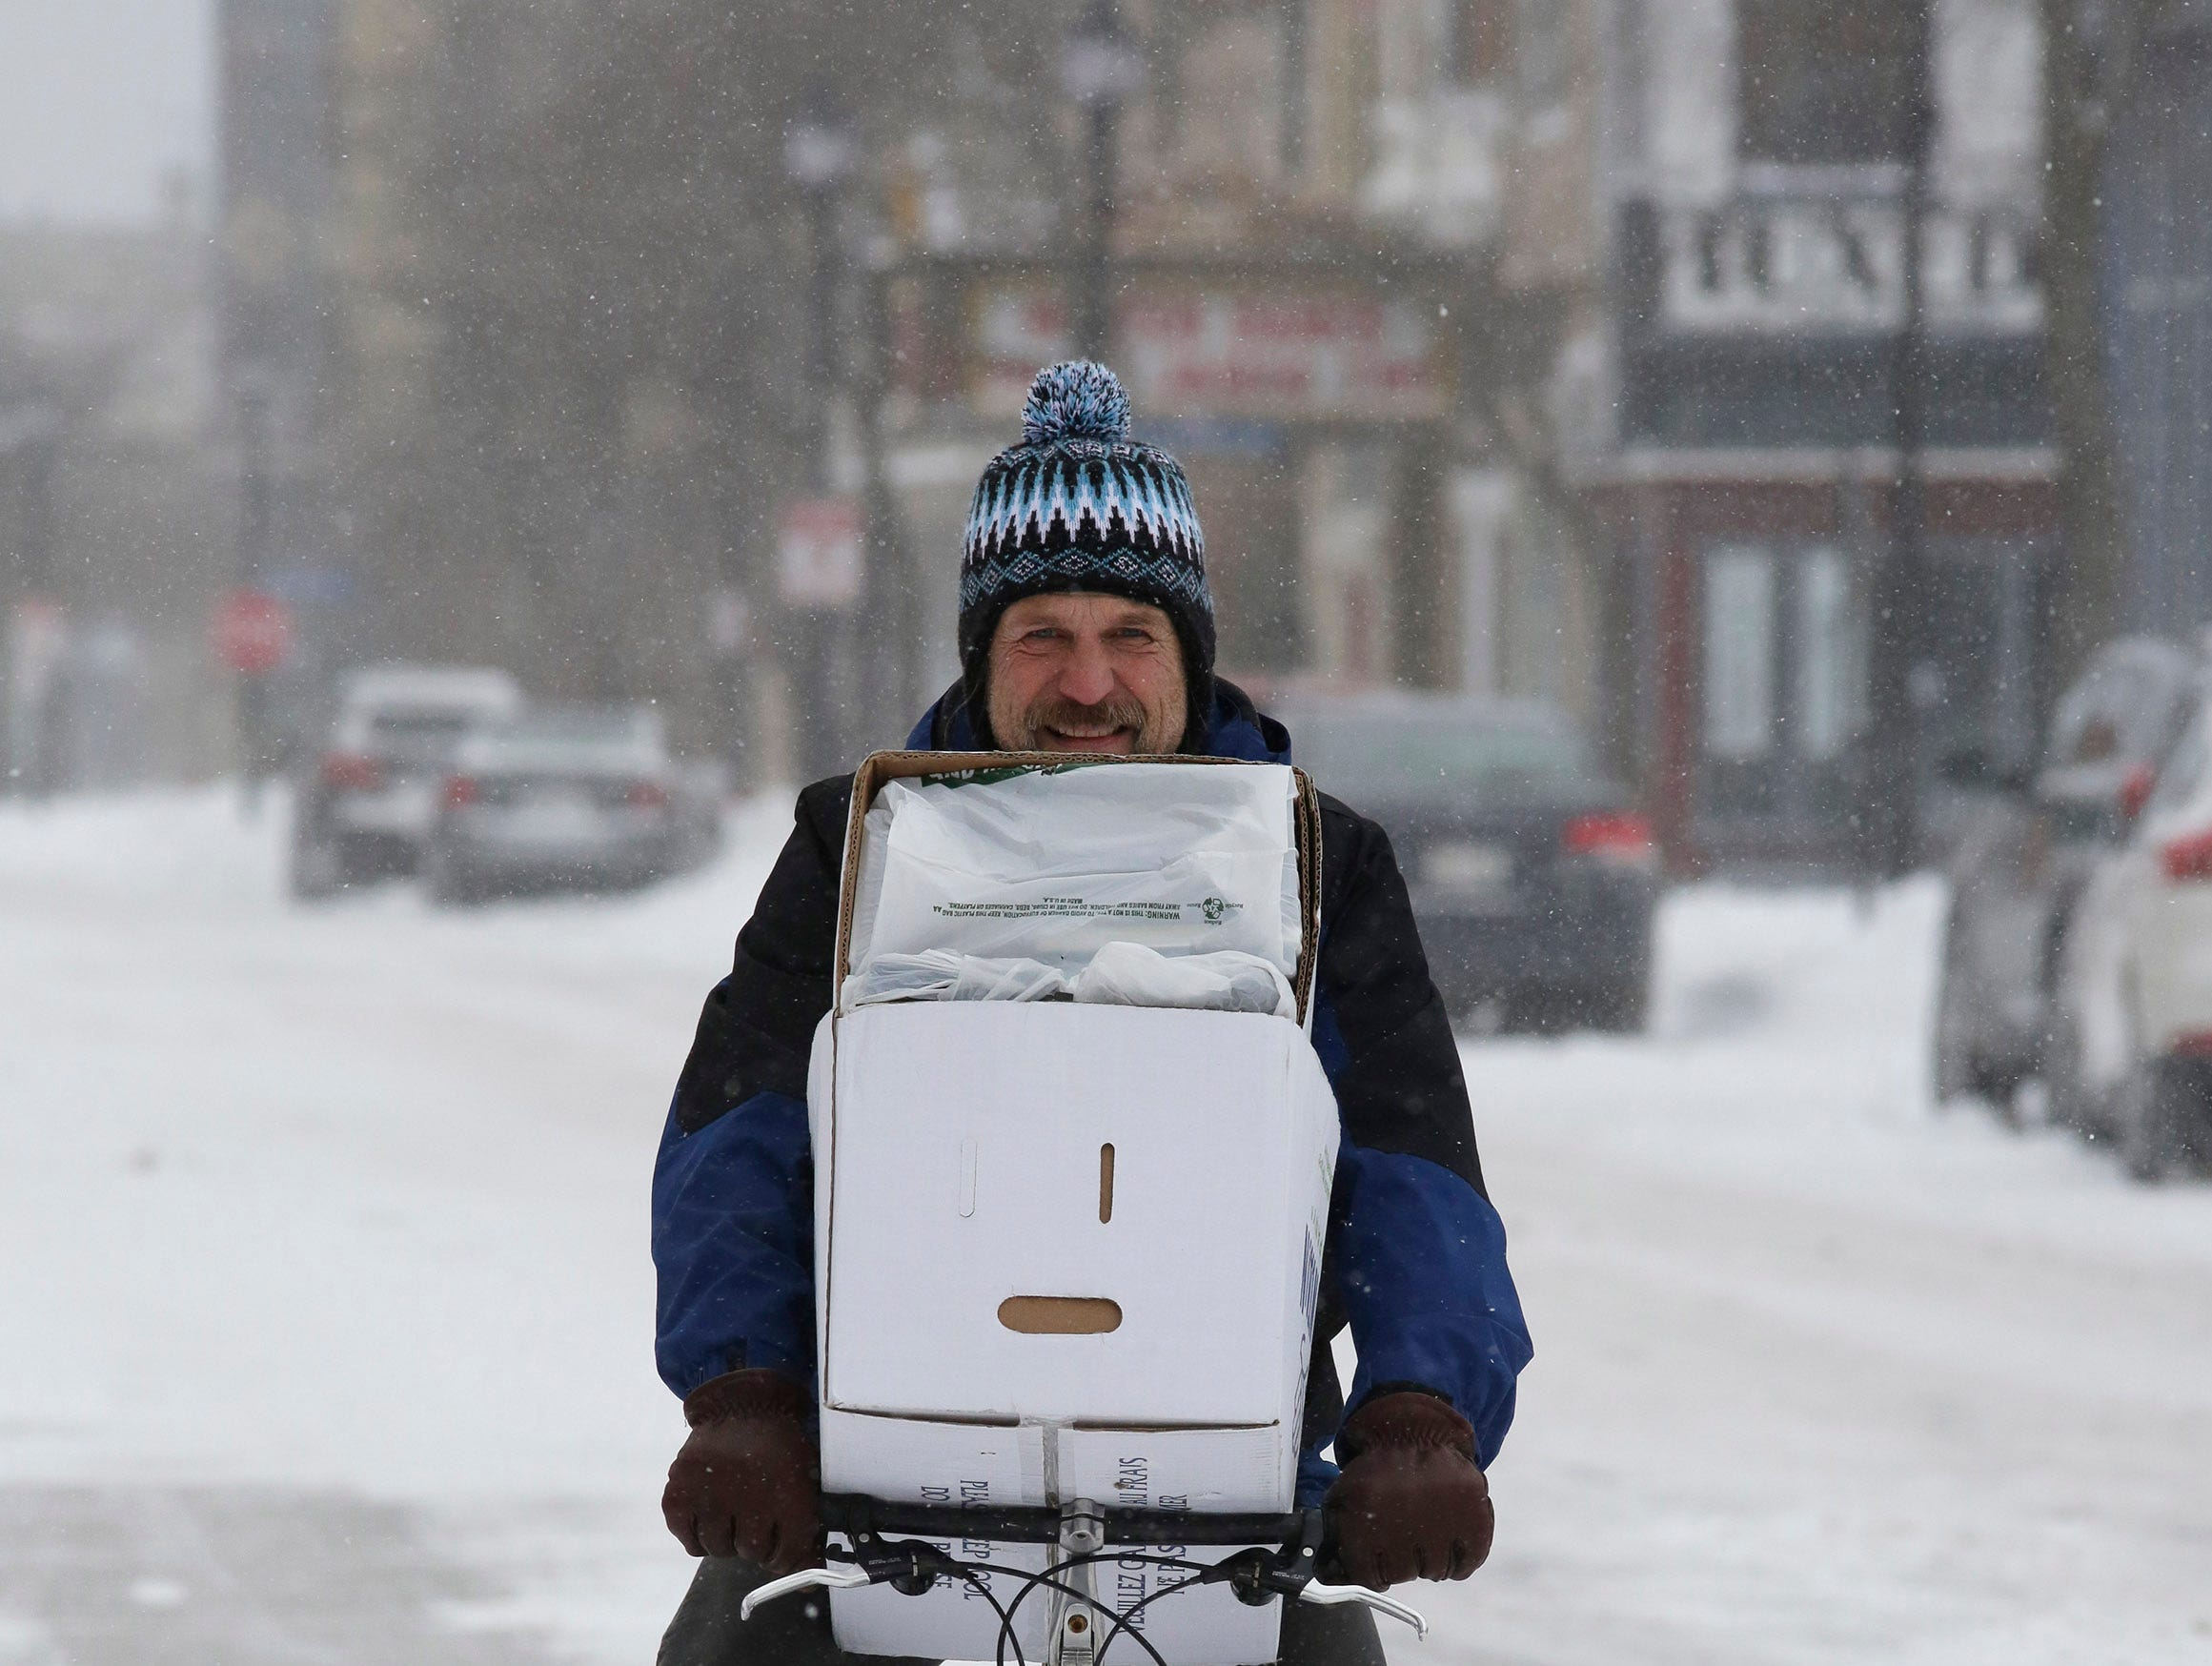 A bicyclist pedals down North 8th Street with a load on his handlebars, Saturday, January 19, 2019, in Sheboygan, Wis.